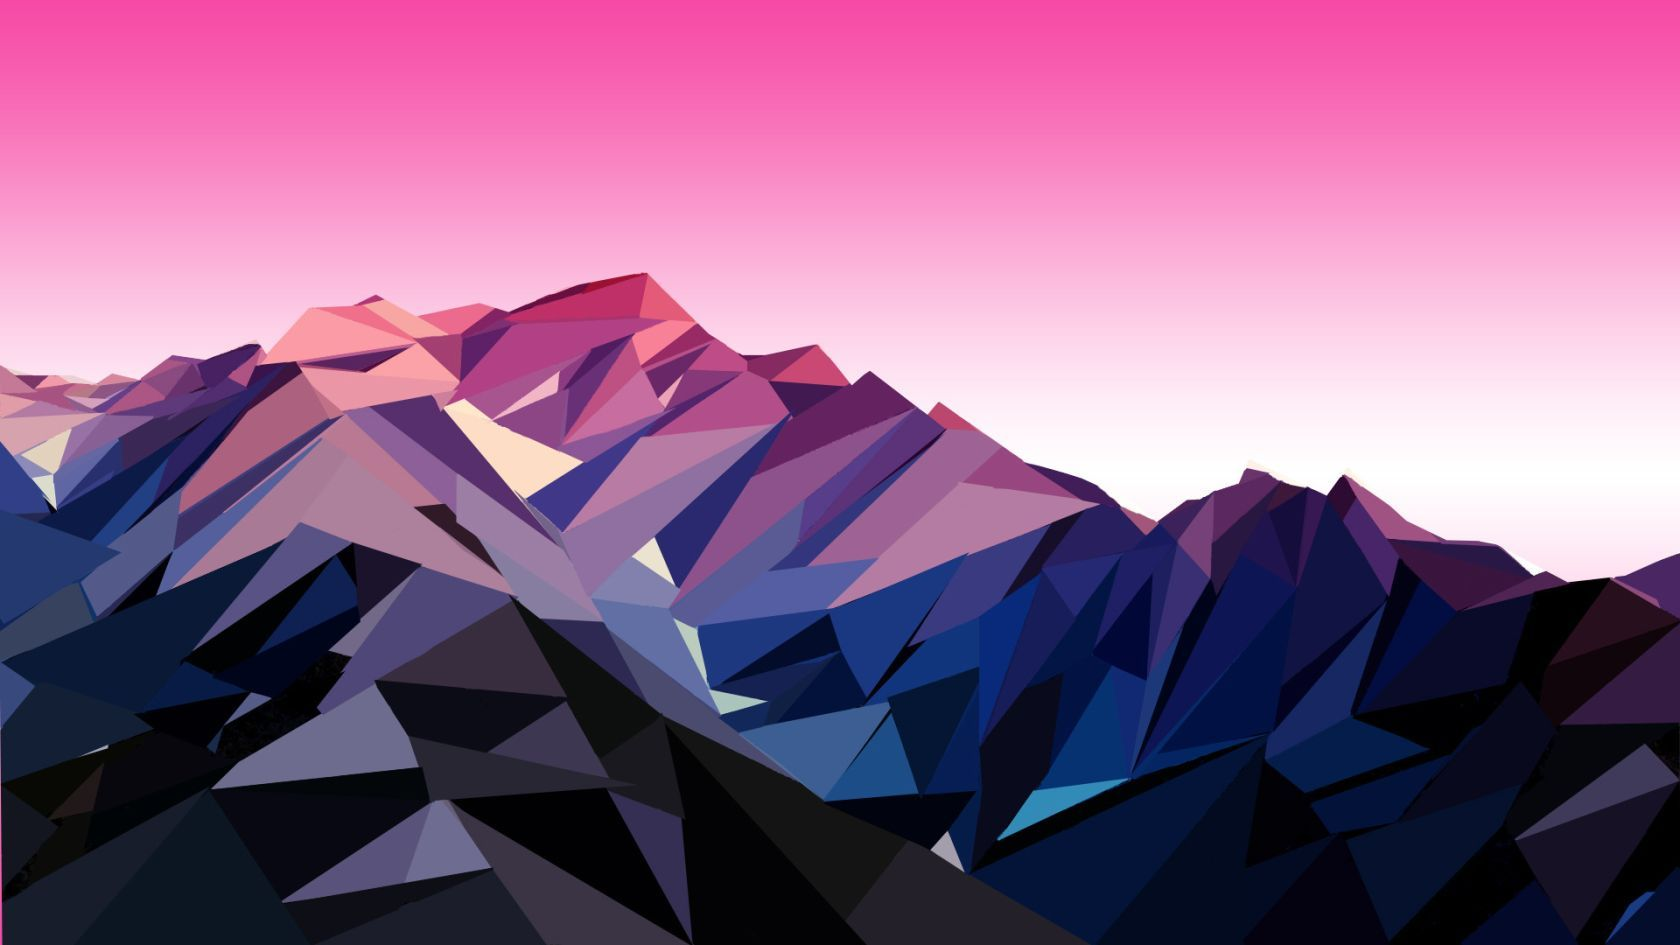 Low Poly Mountain Background , HD Wallpaper & Backgrounds